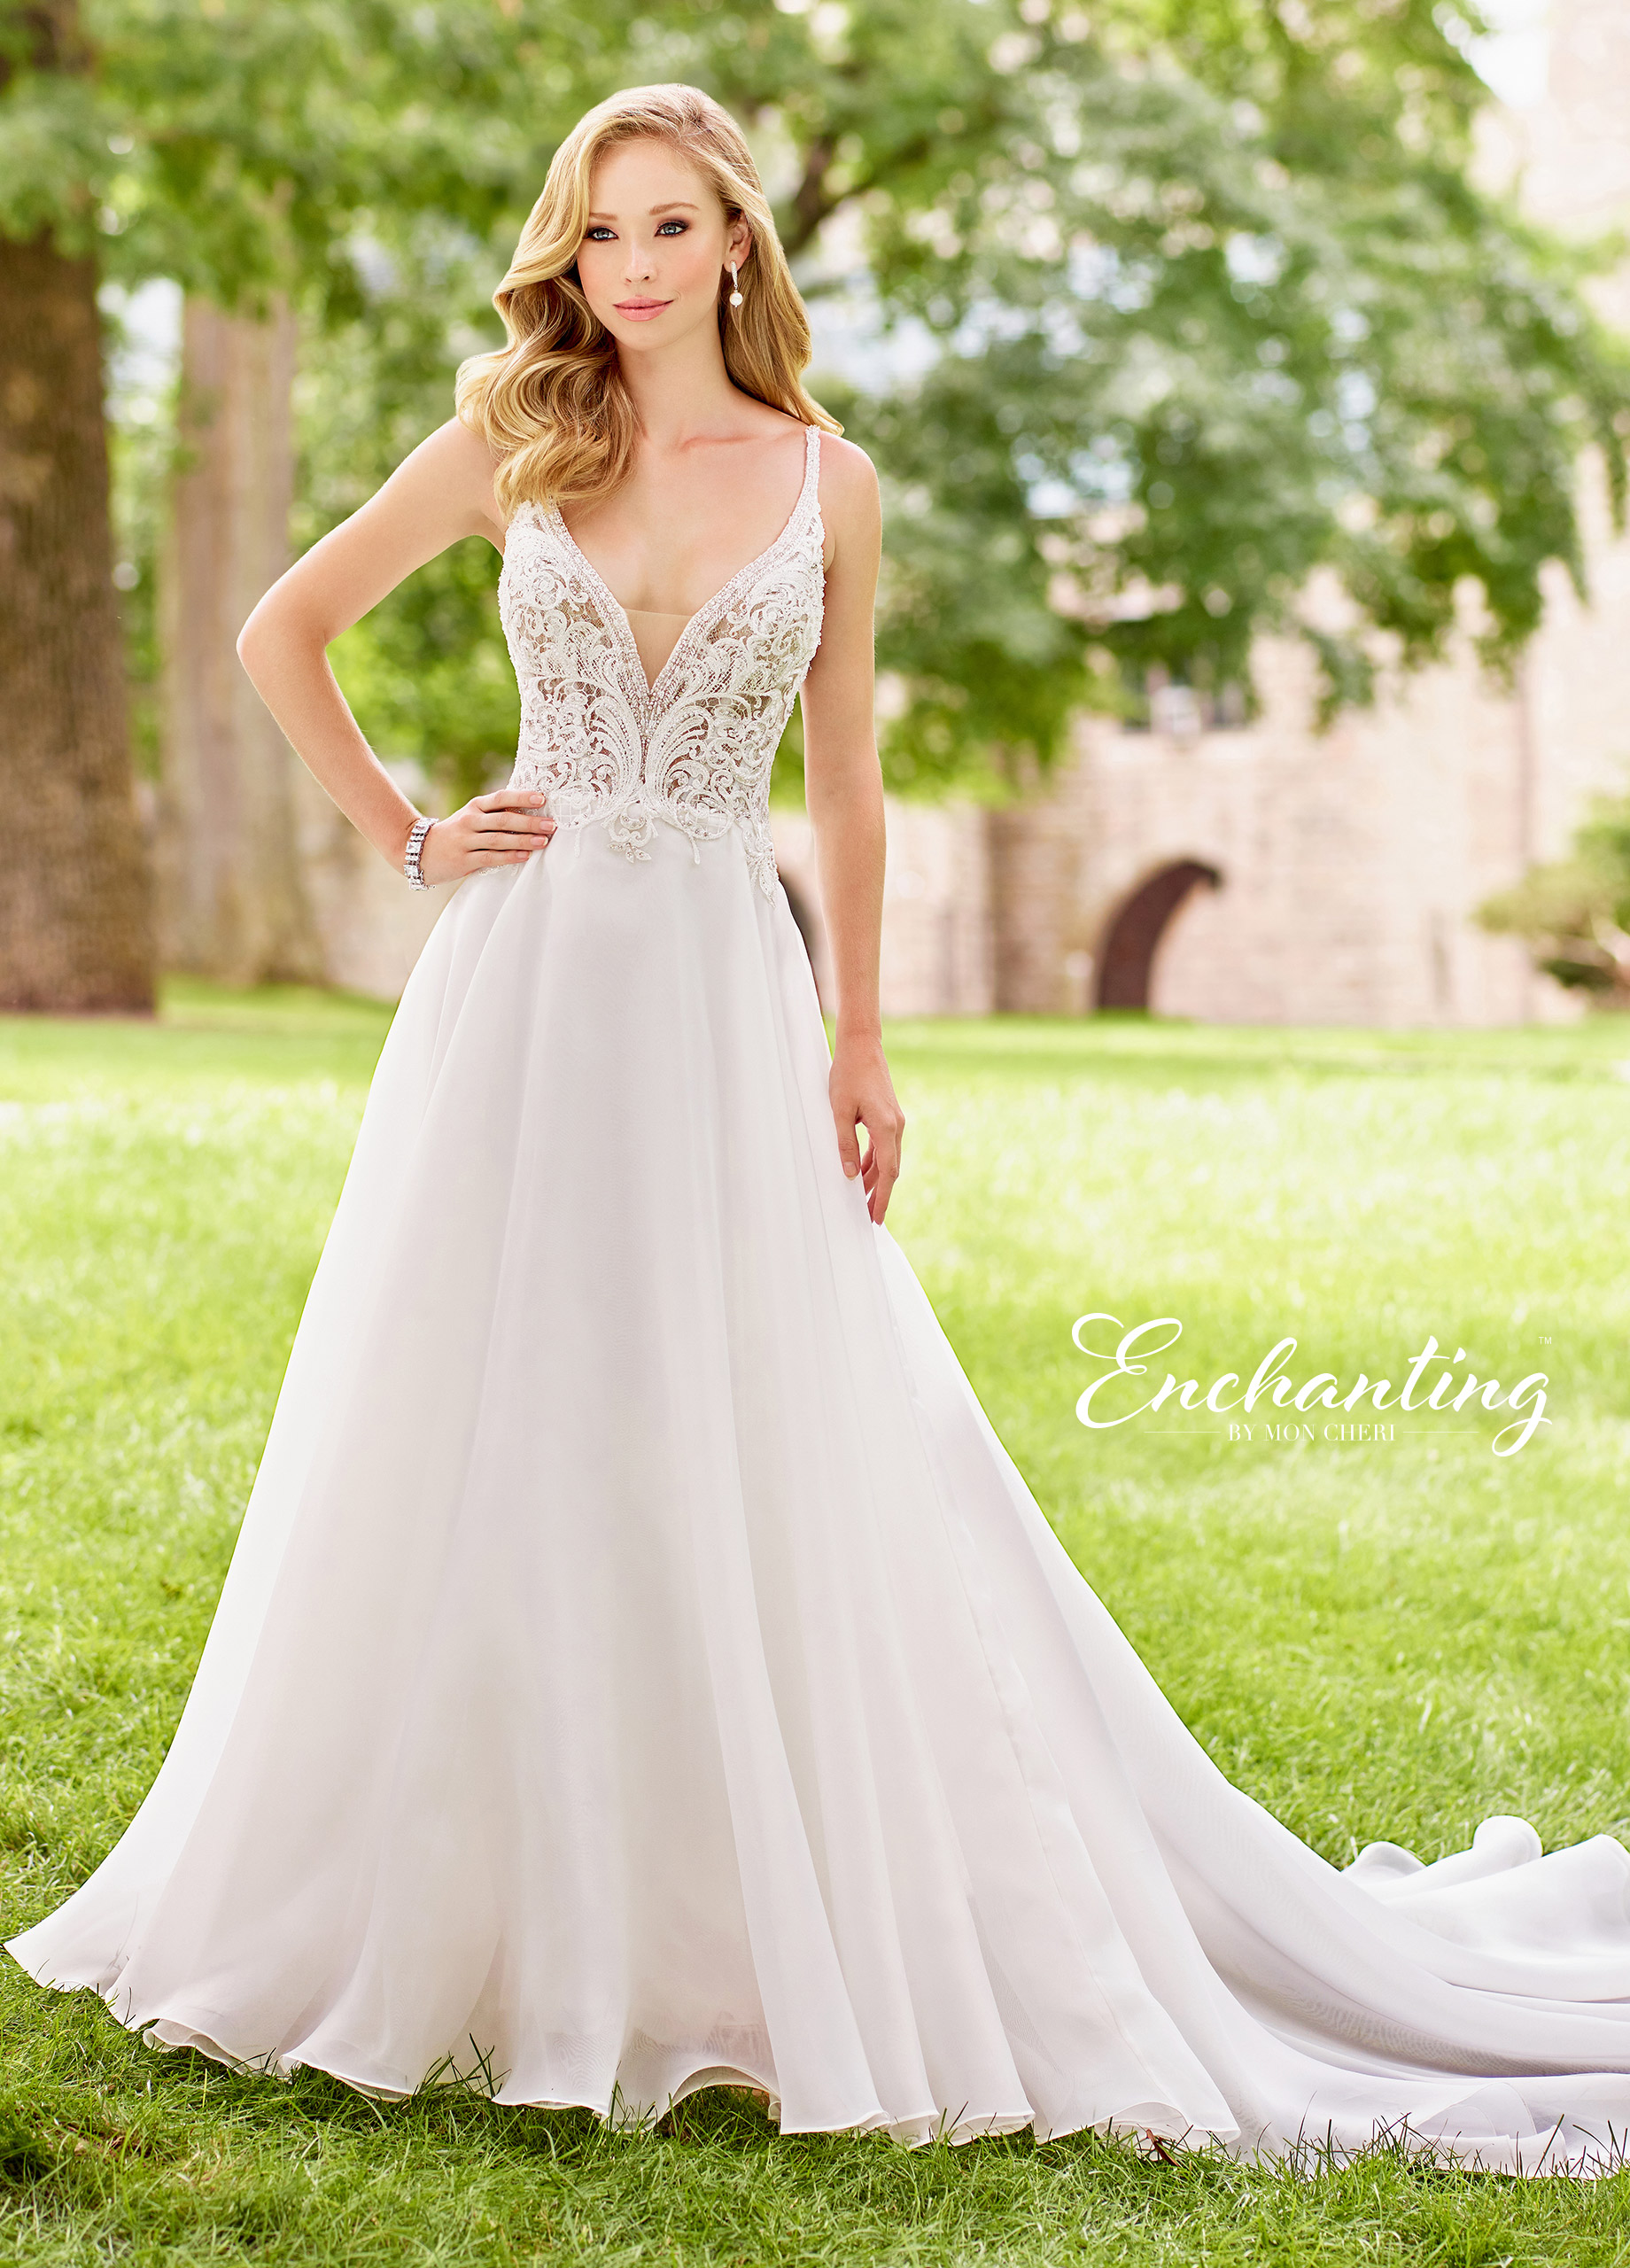 beach-wedding-dress-Enchanting-118137_A